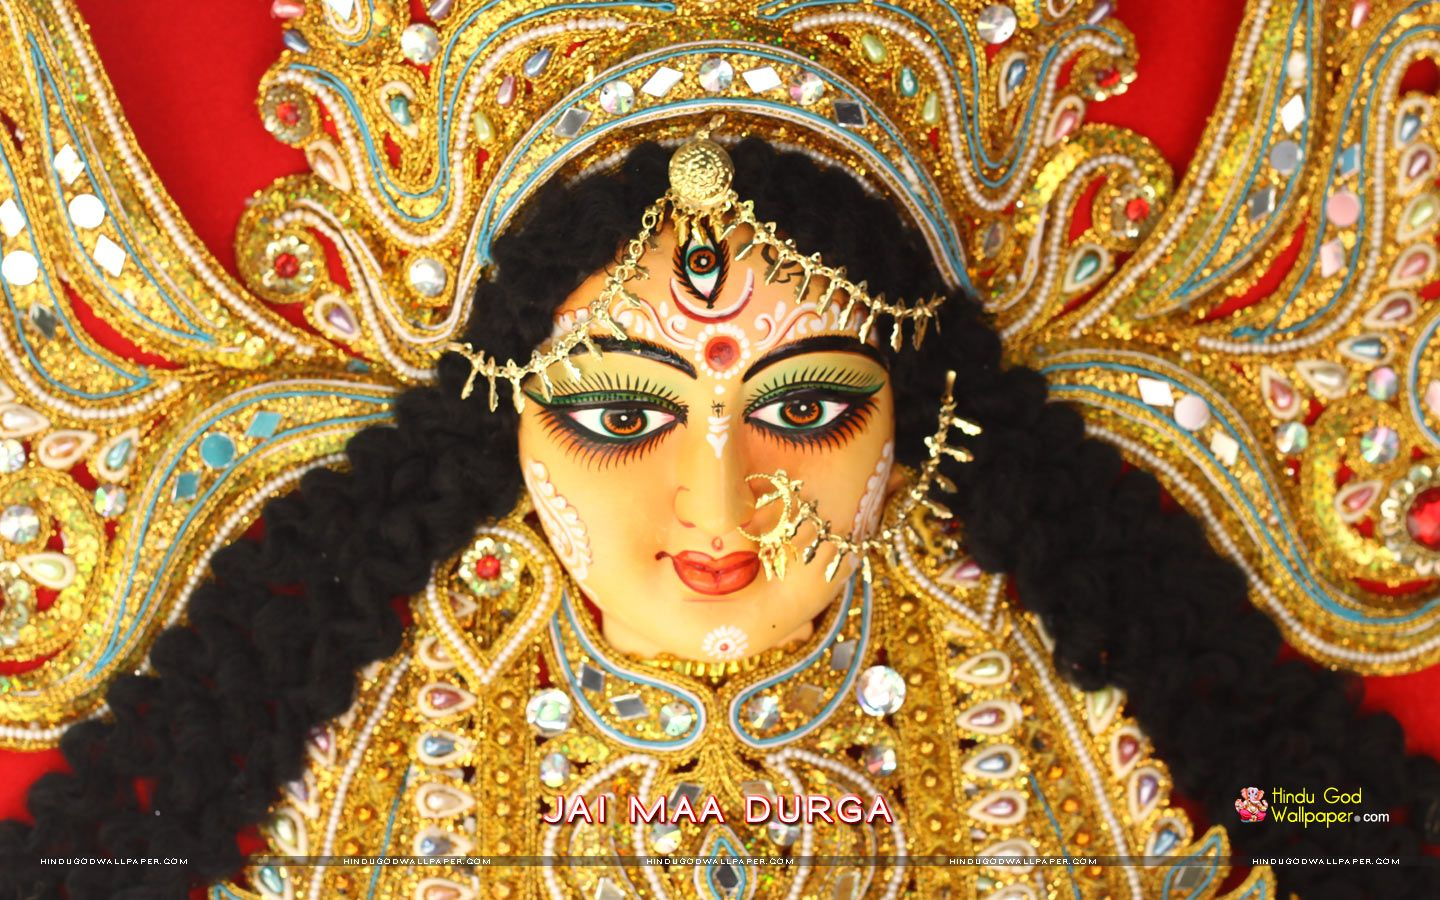 durga ma photo এর ছবির ফলাফল